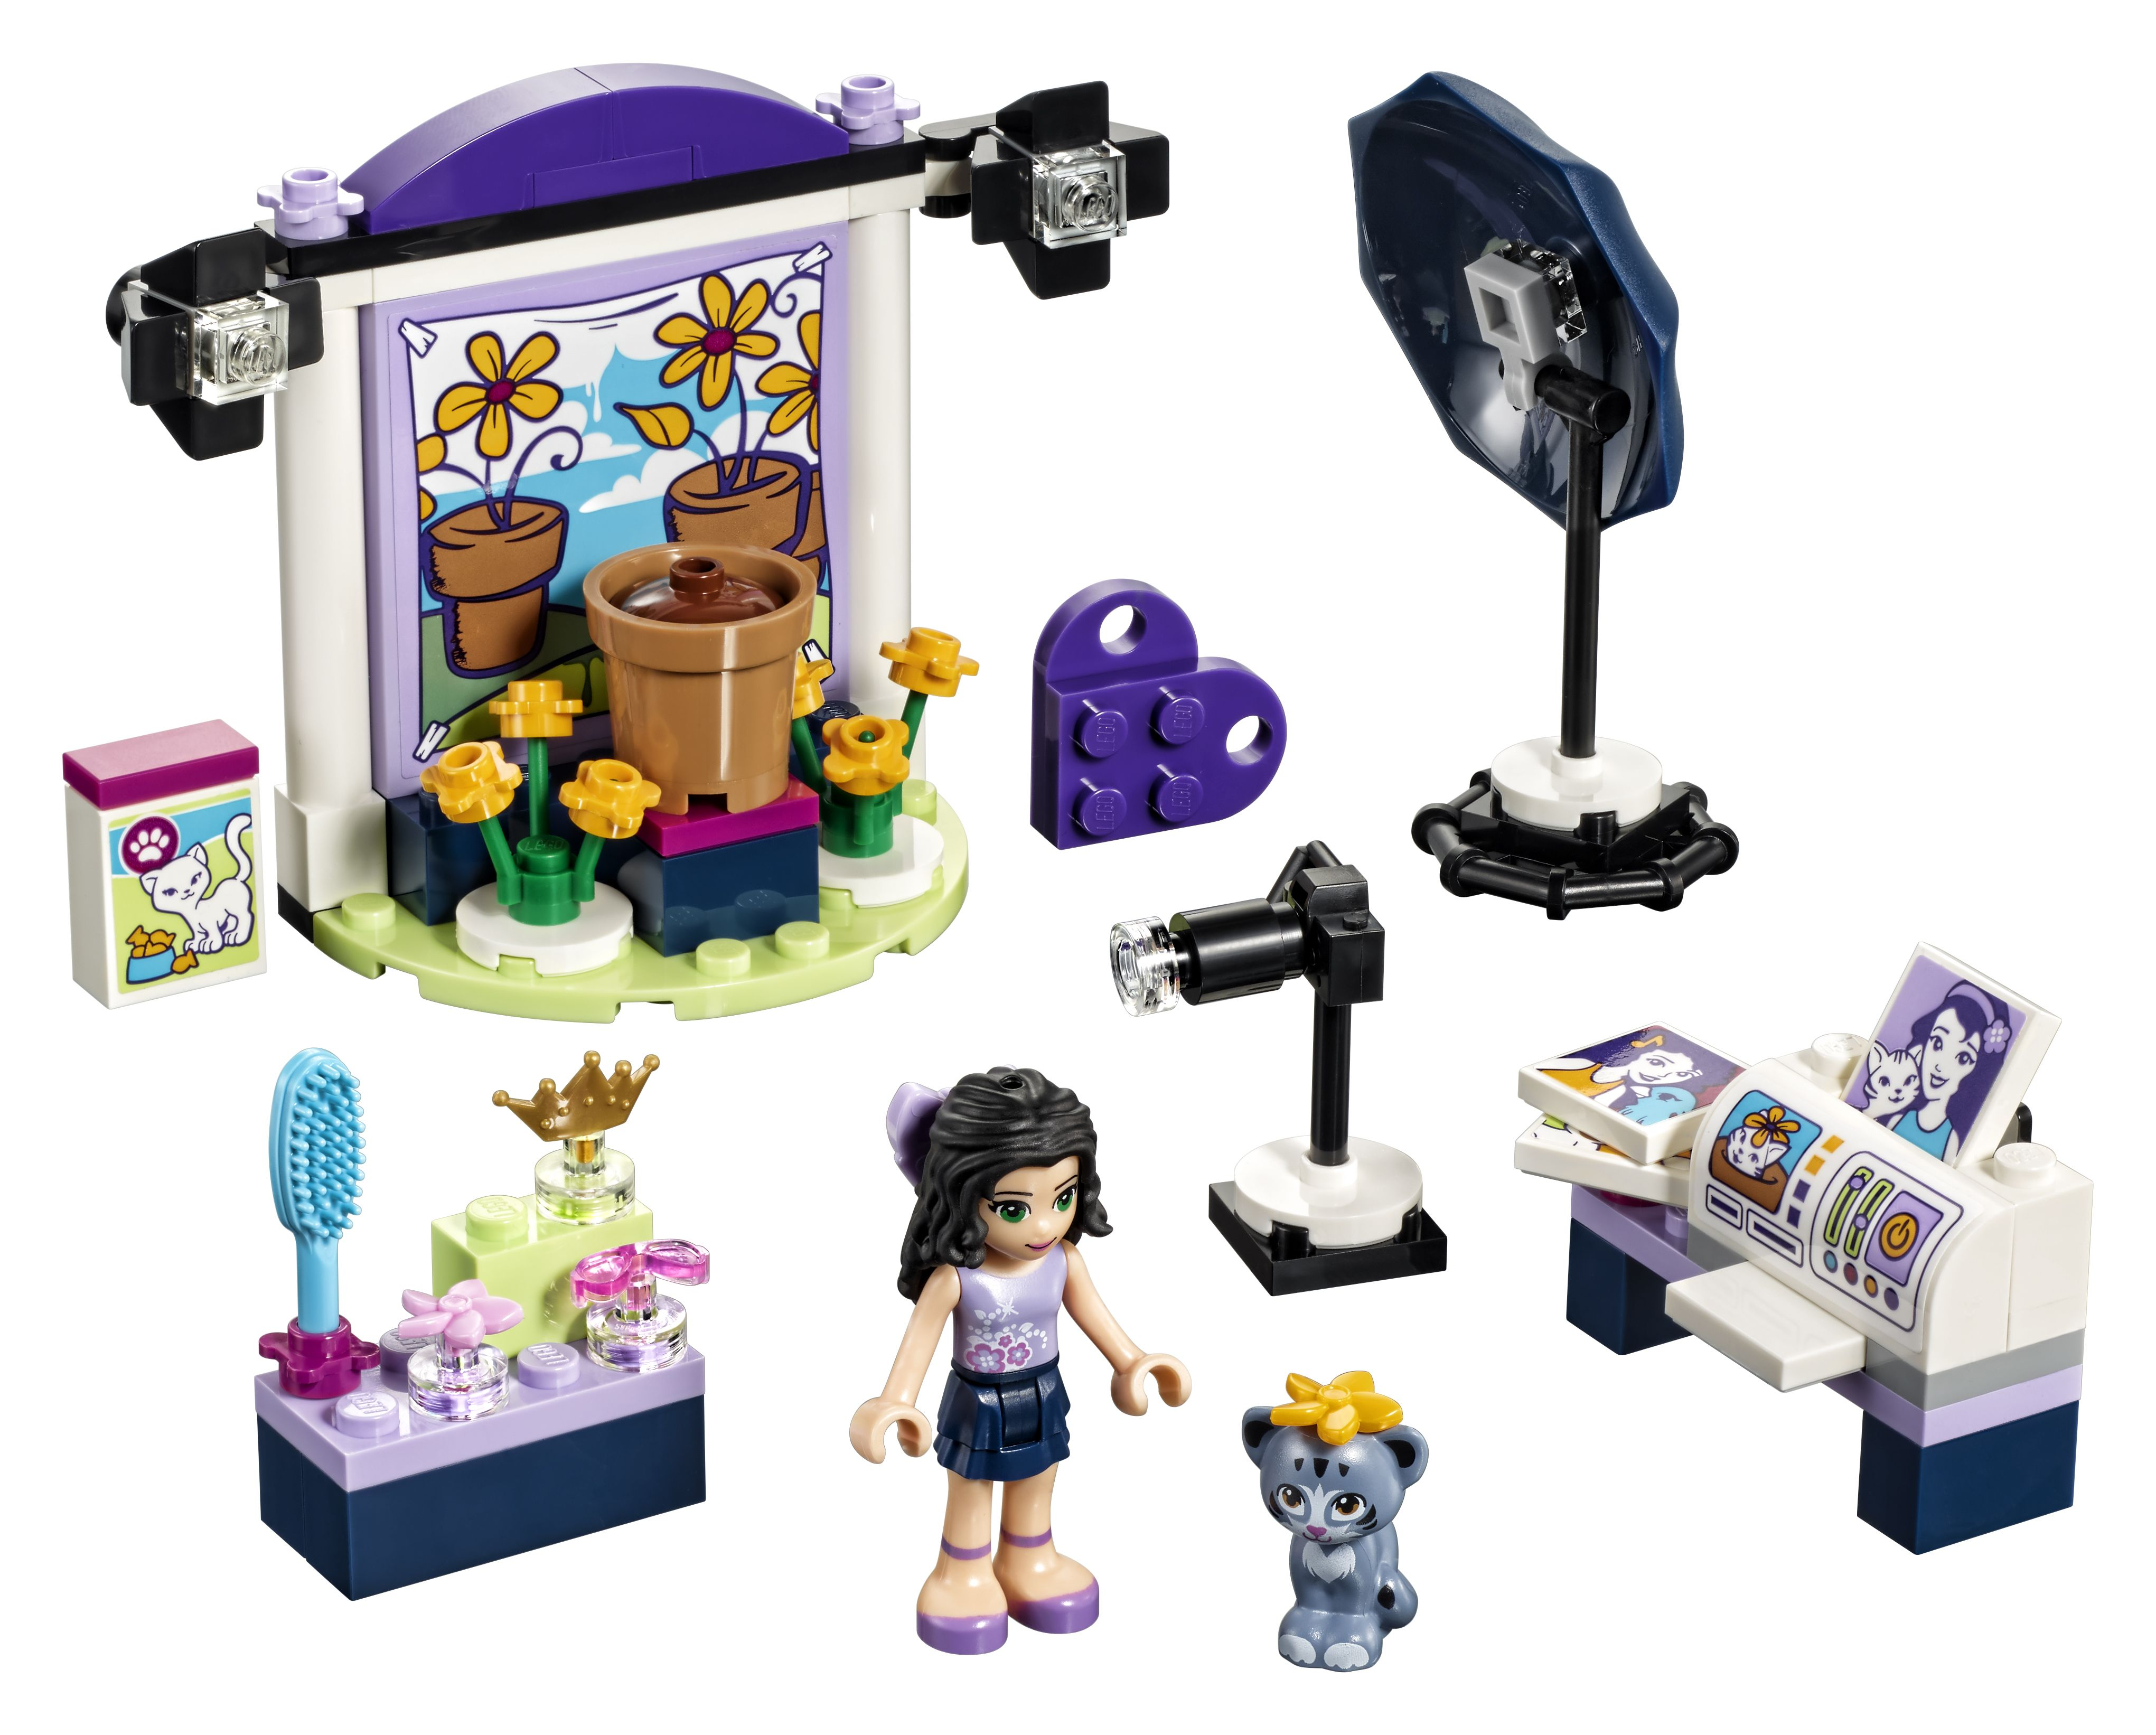 emmas fotostudio 41305 von lego friends im set lego. Black Bedroom Furniture Sets. Home Design Ideas